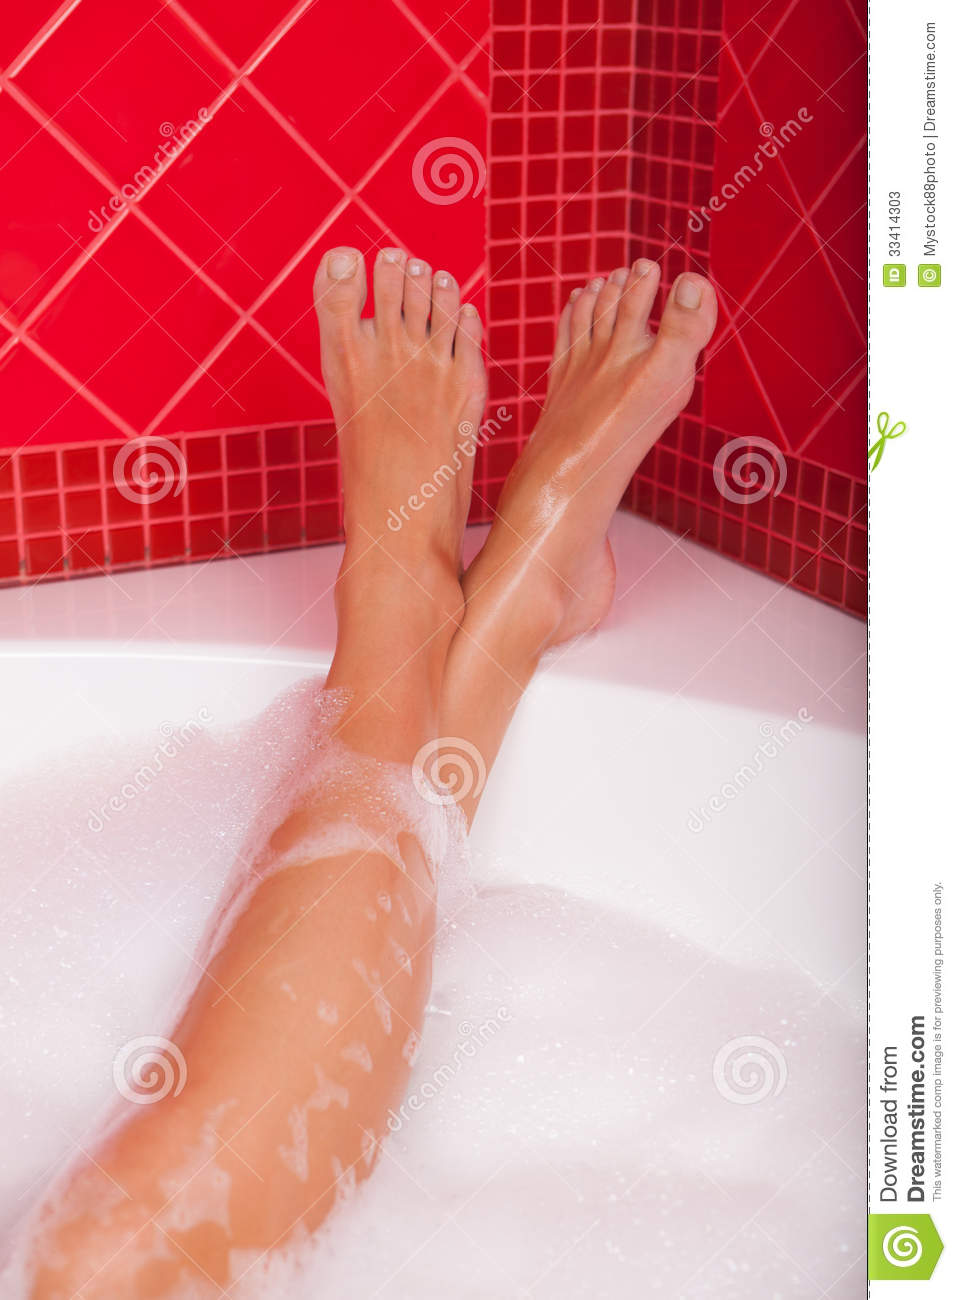 Legs In Bubble Bath Stock Image Image Of Foot Adult